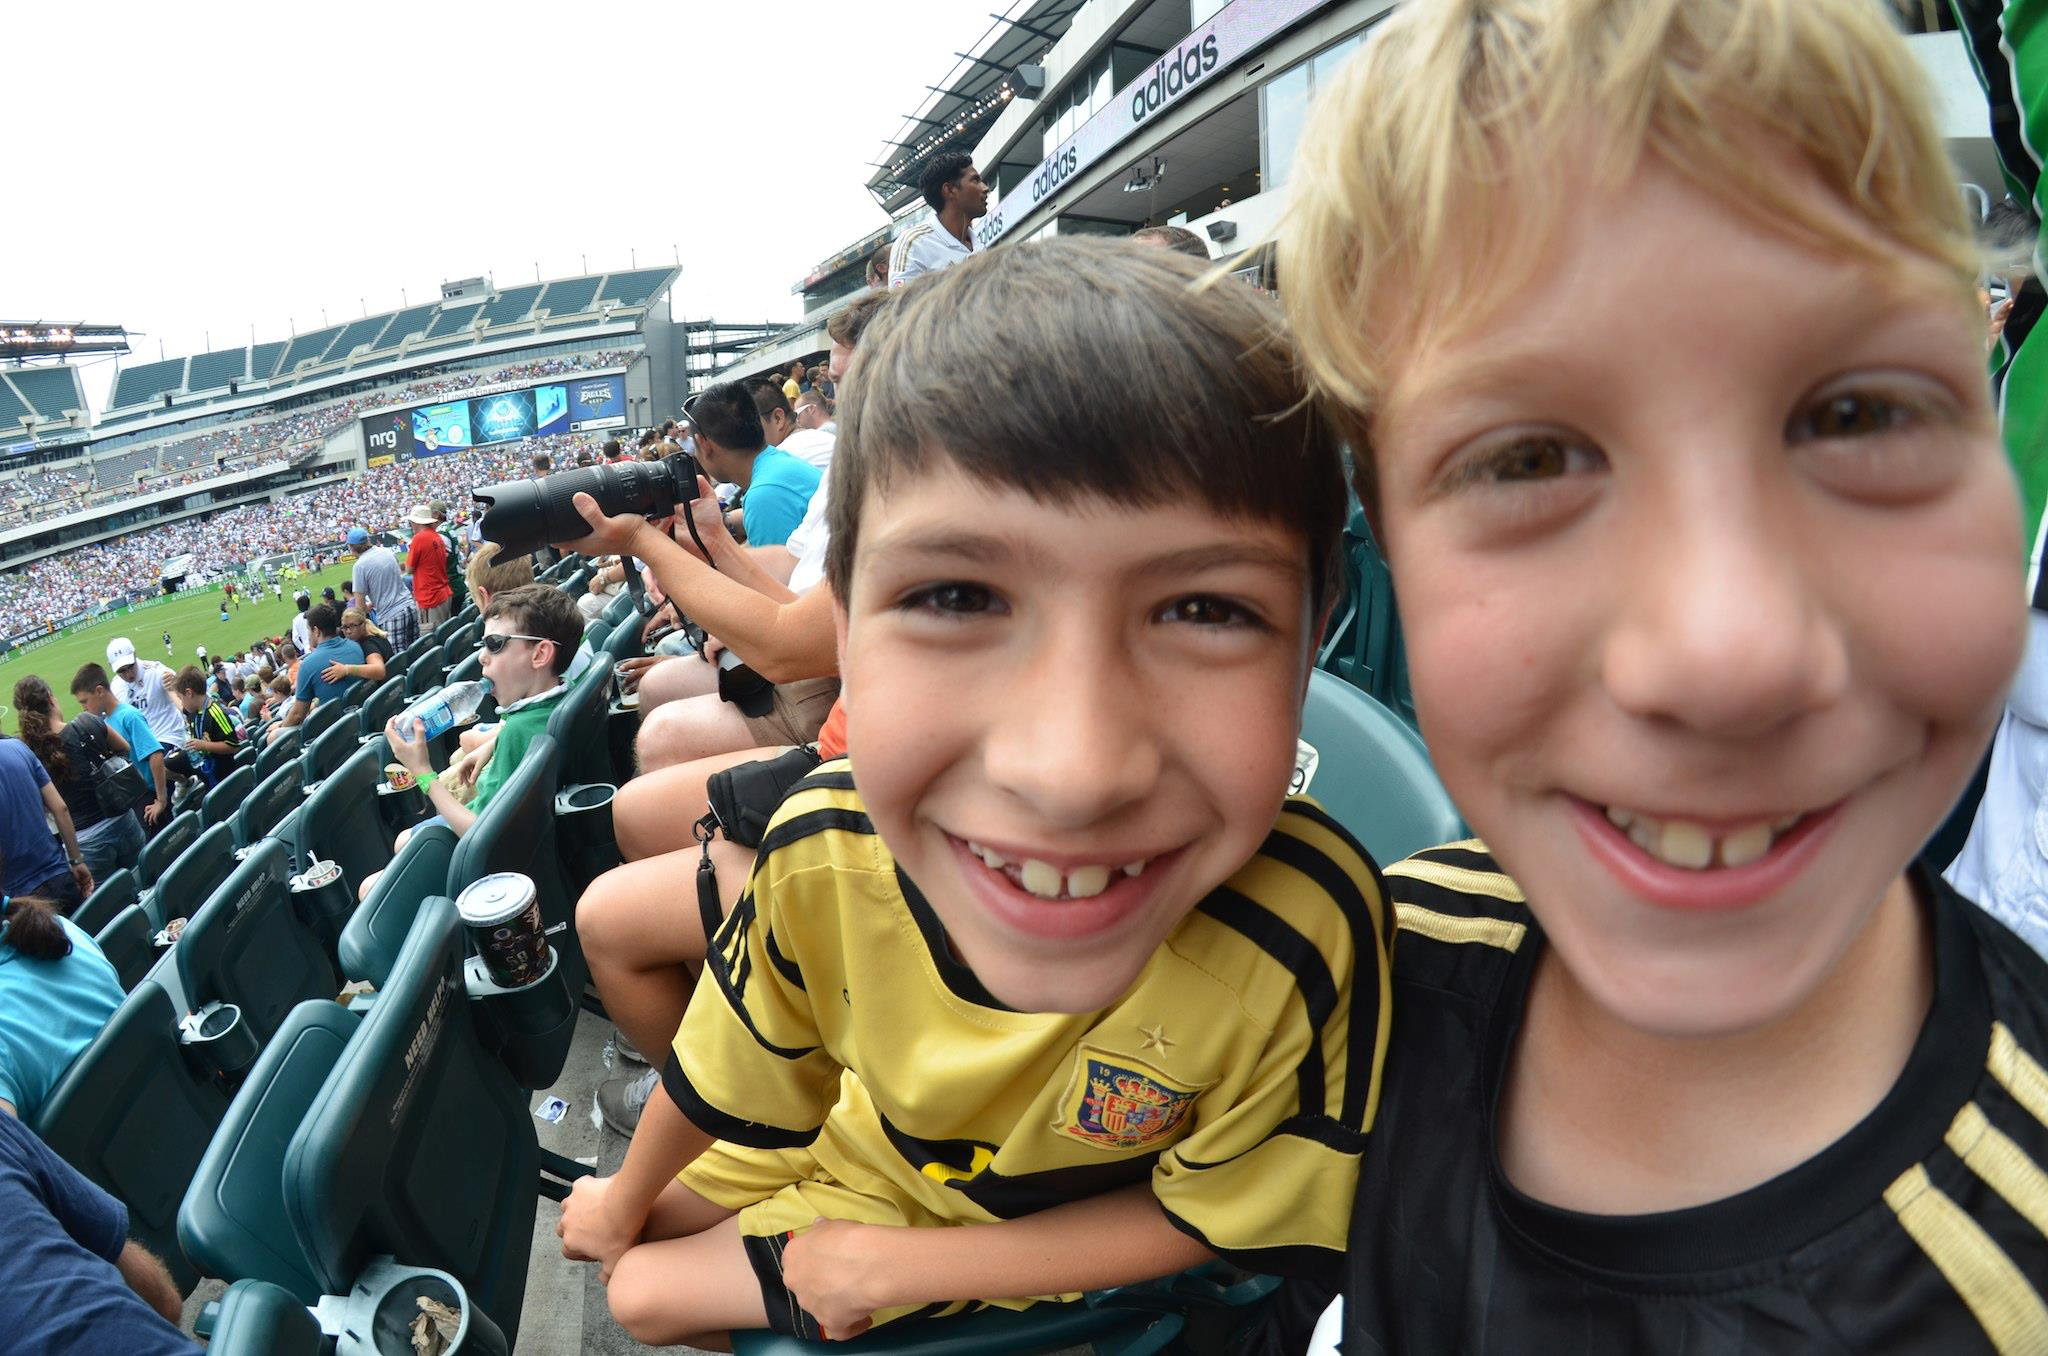 Mack and John watching Iker Casillas playing for Real Madrid v. Celtic. Mack is wearing his Iker Spain jersey.